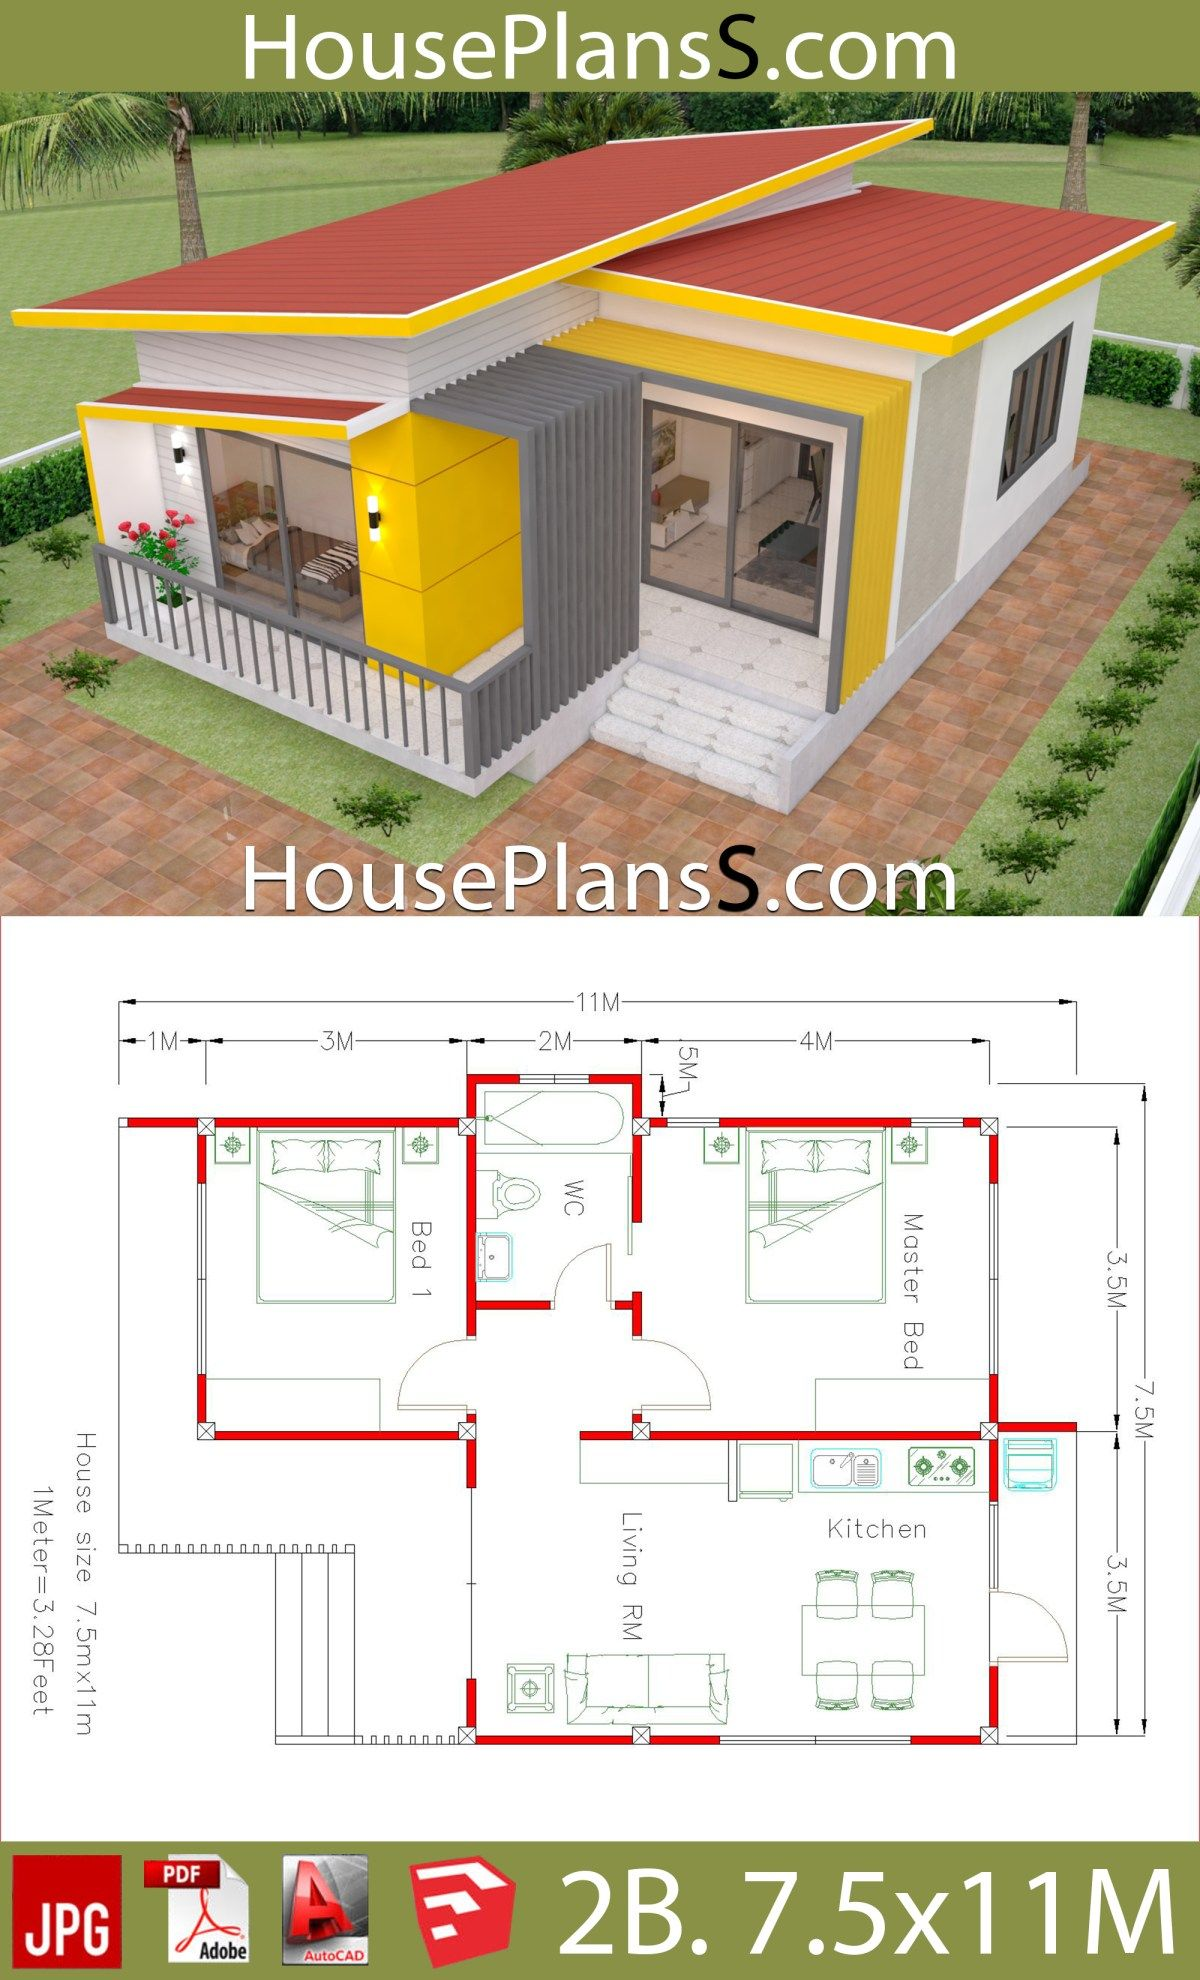 House Plans 7 5x11 With 2 Bedrooms Full Plans House Plans Sam Little House Plans Small House Design Plans House Plans